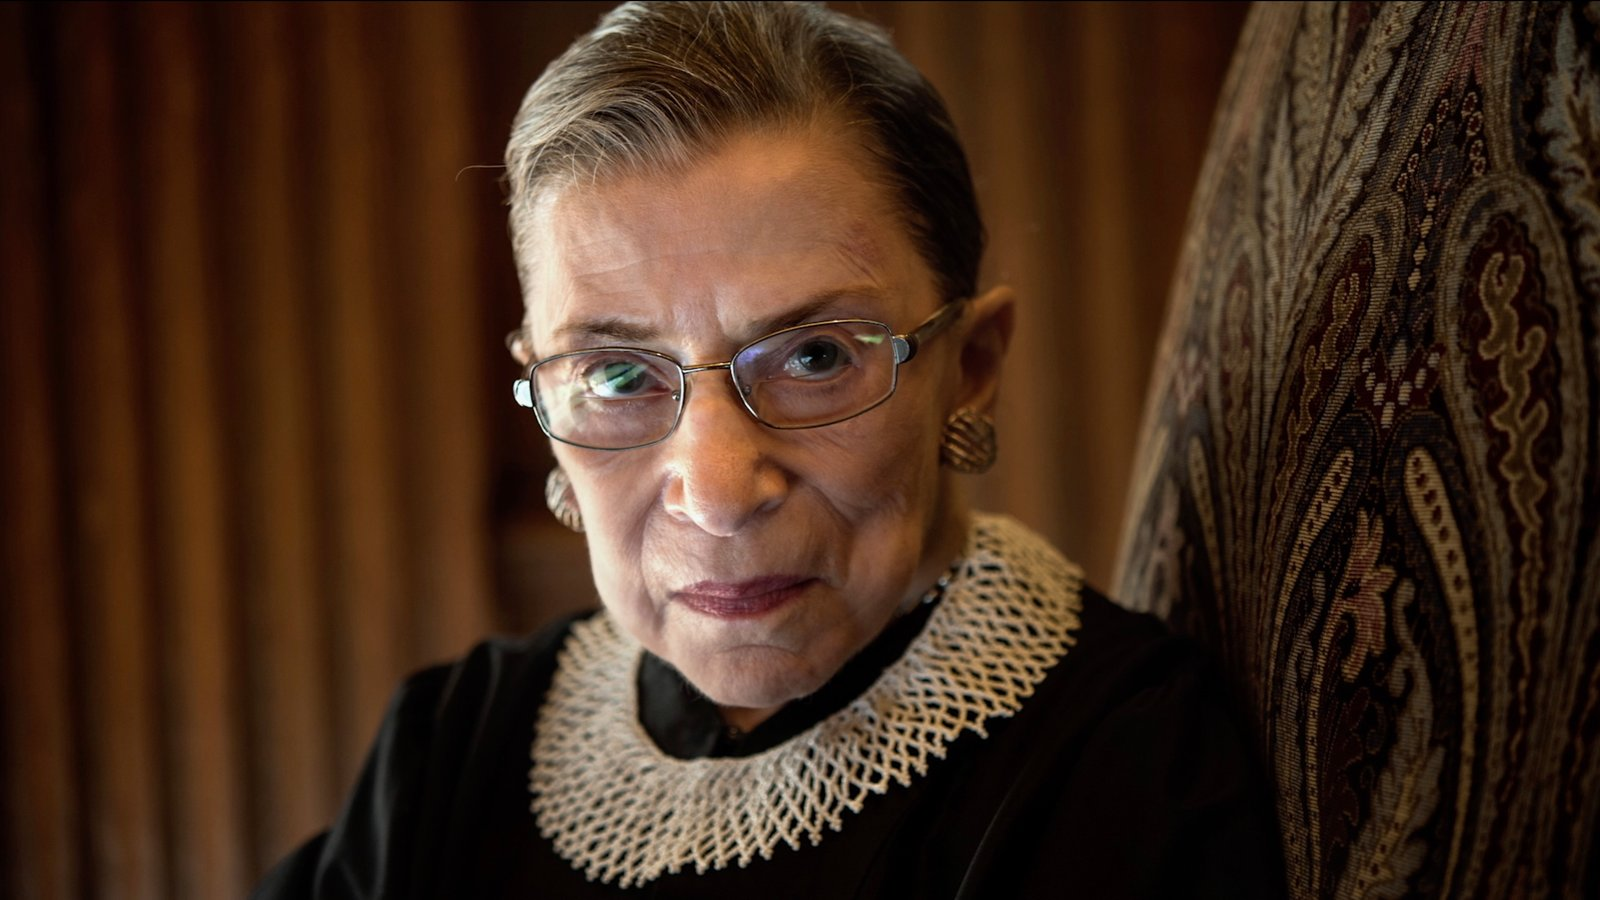 Ruth Bader Ginsburg: The Films About Her Life